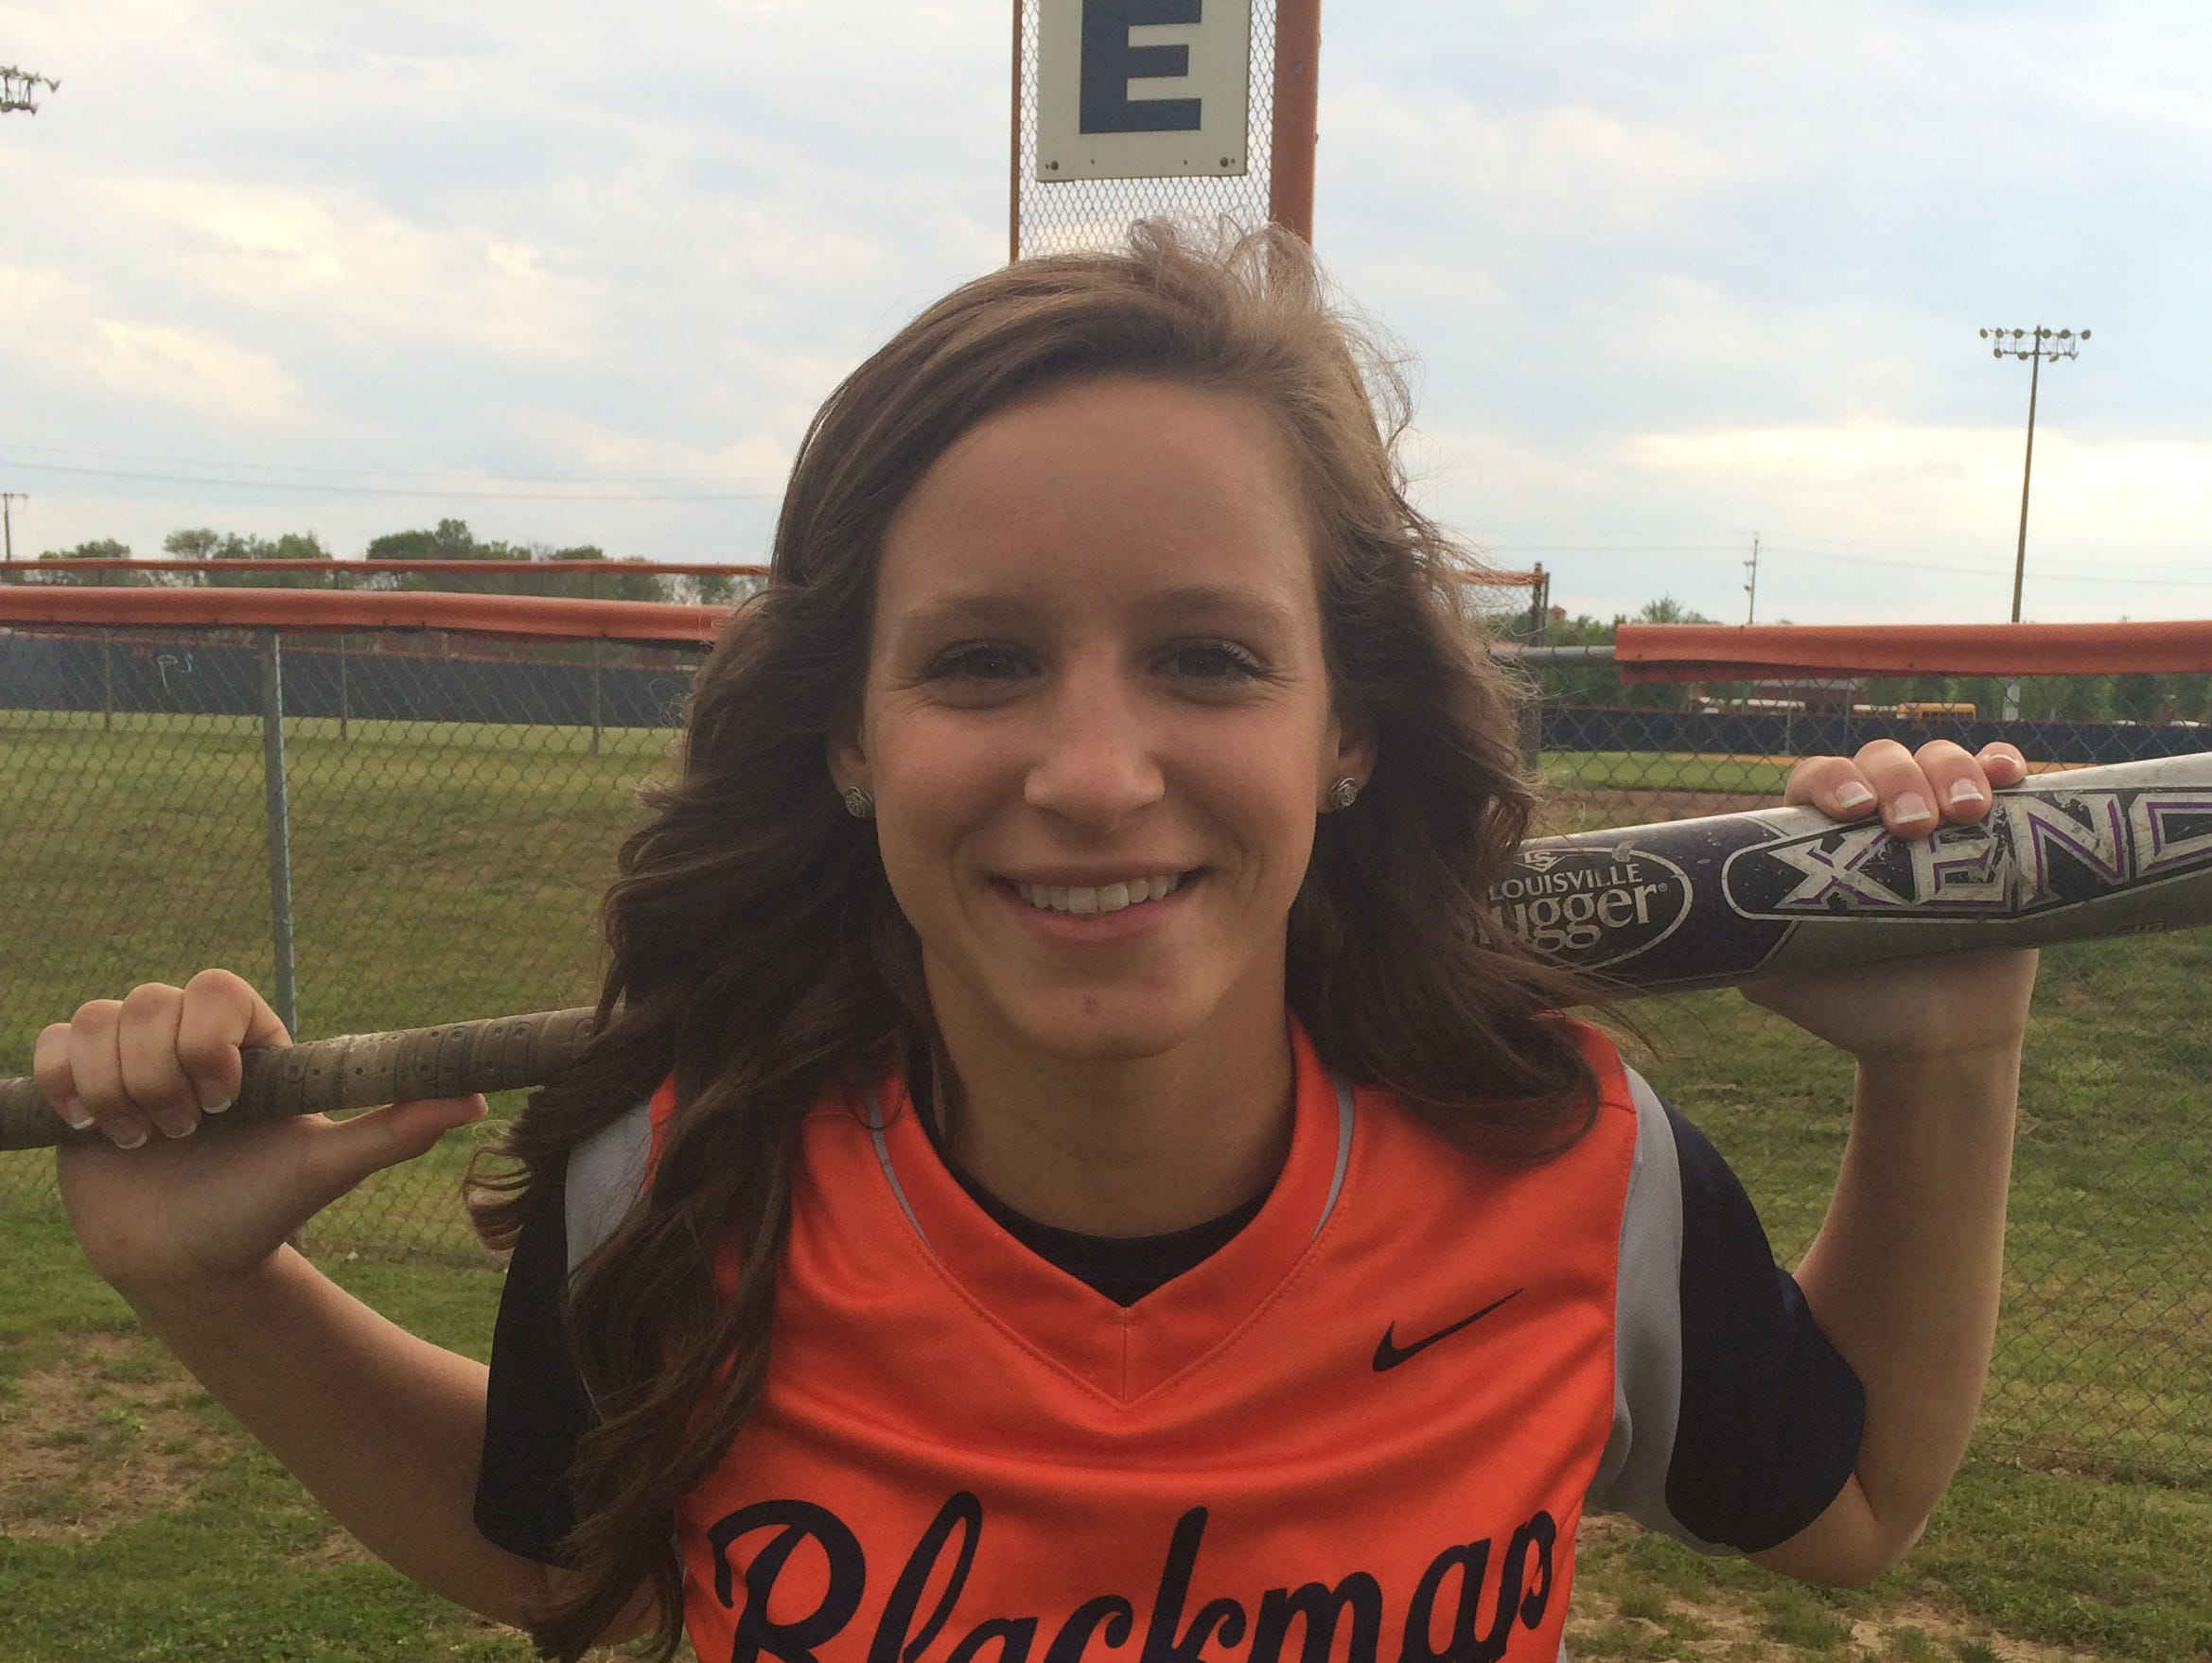 Kirstyn Cuccia leads Blackman at the plate this year, and can play any position except pitch.